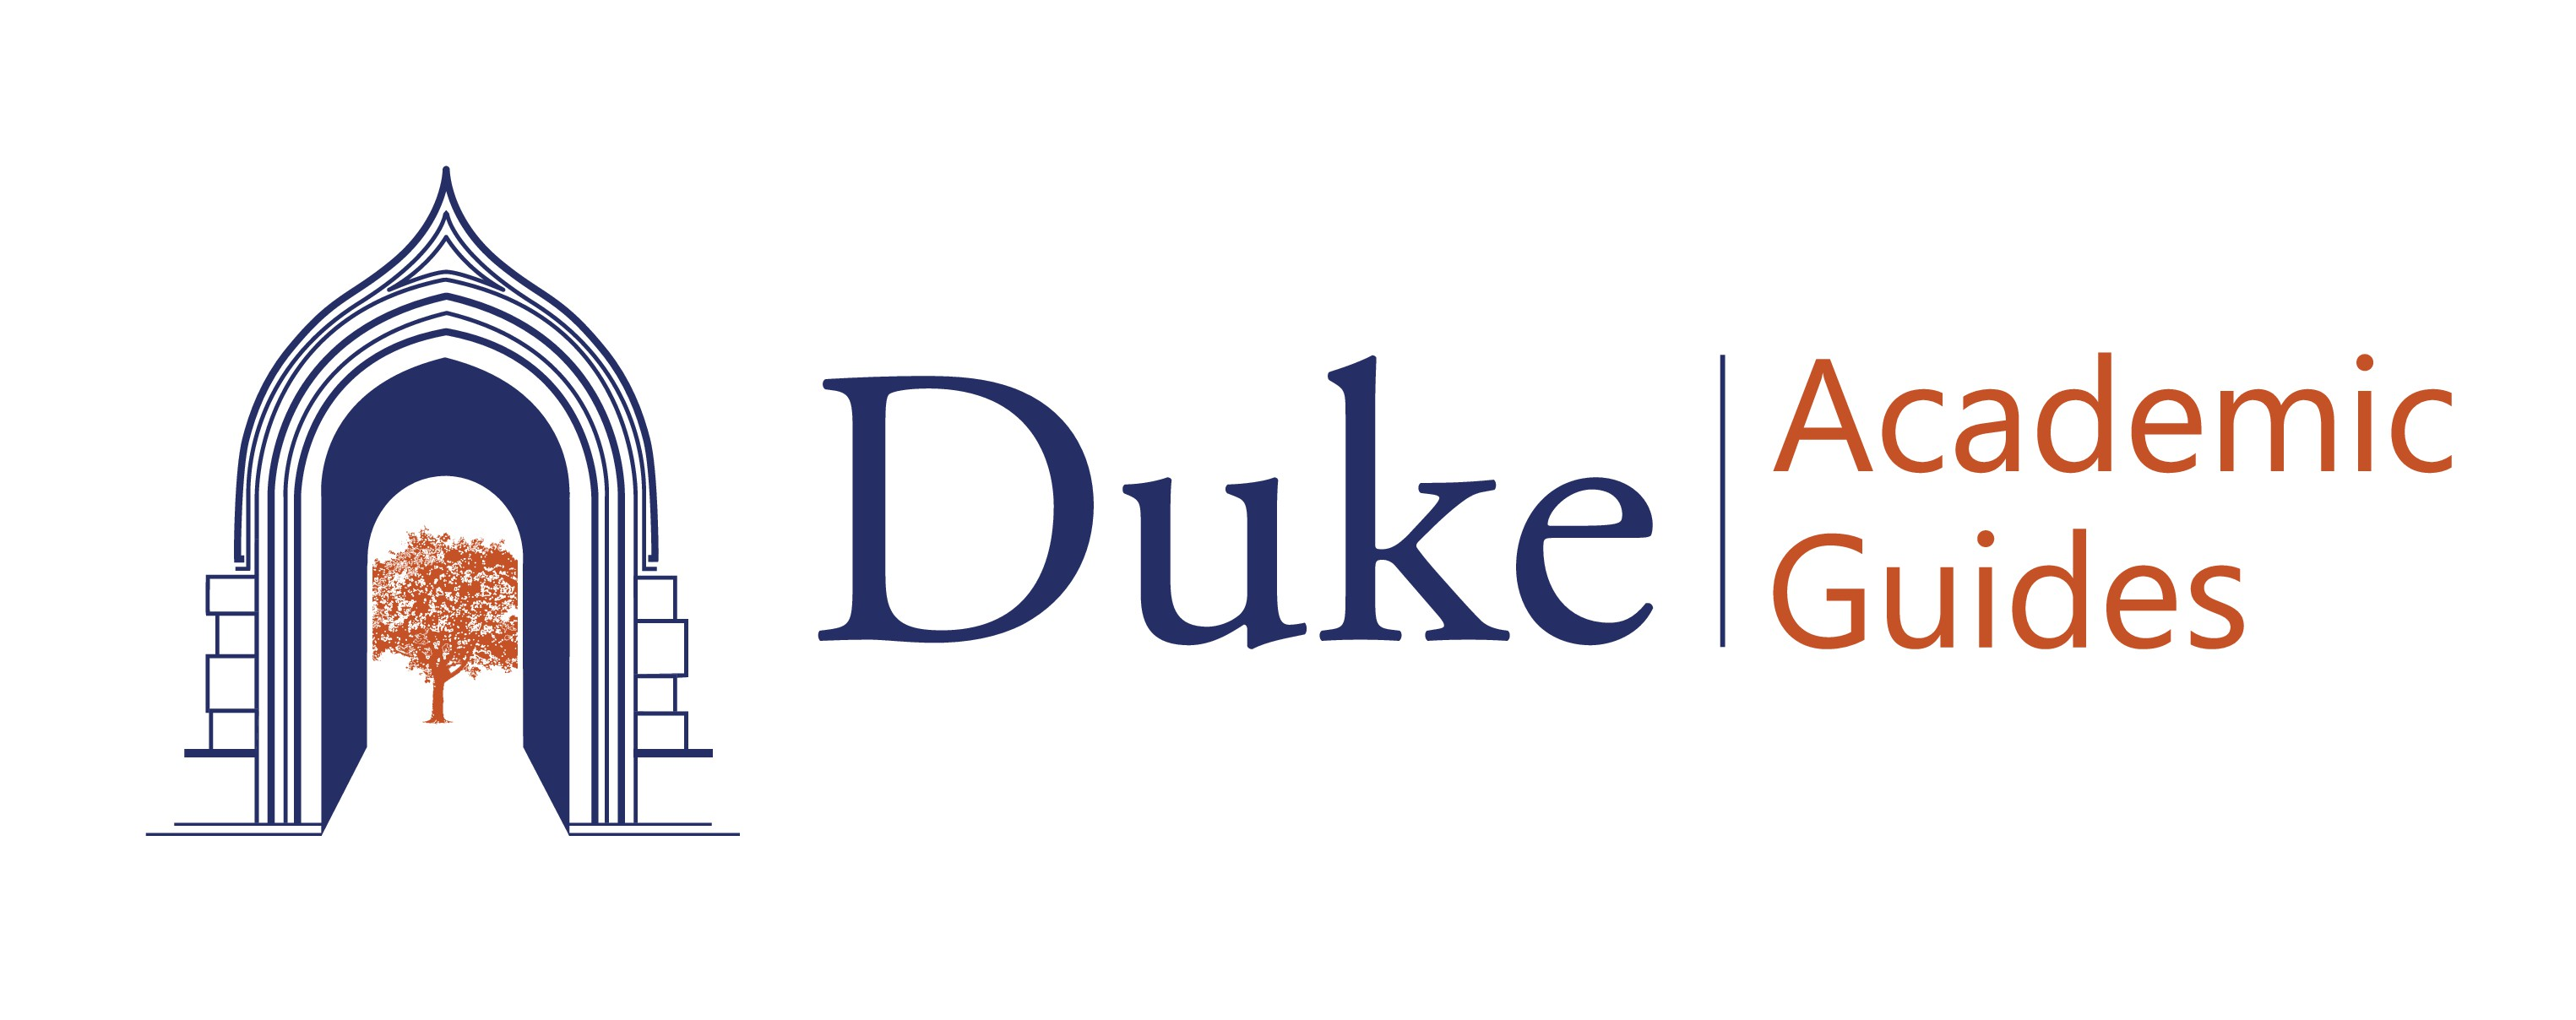 Duke University Academic Guide Program Illustrated Logo